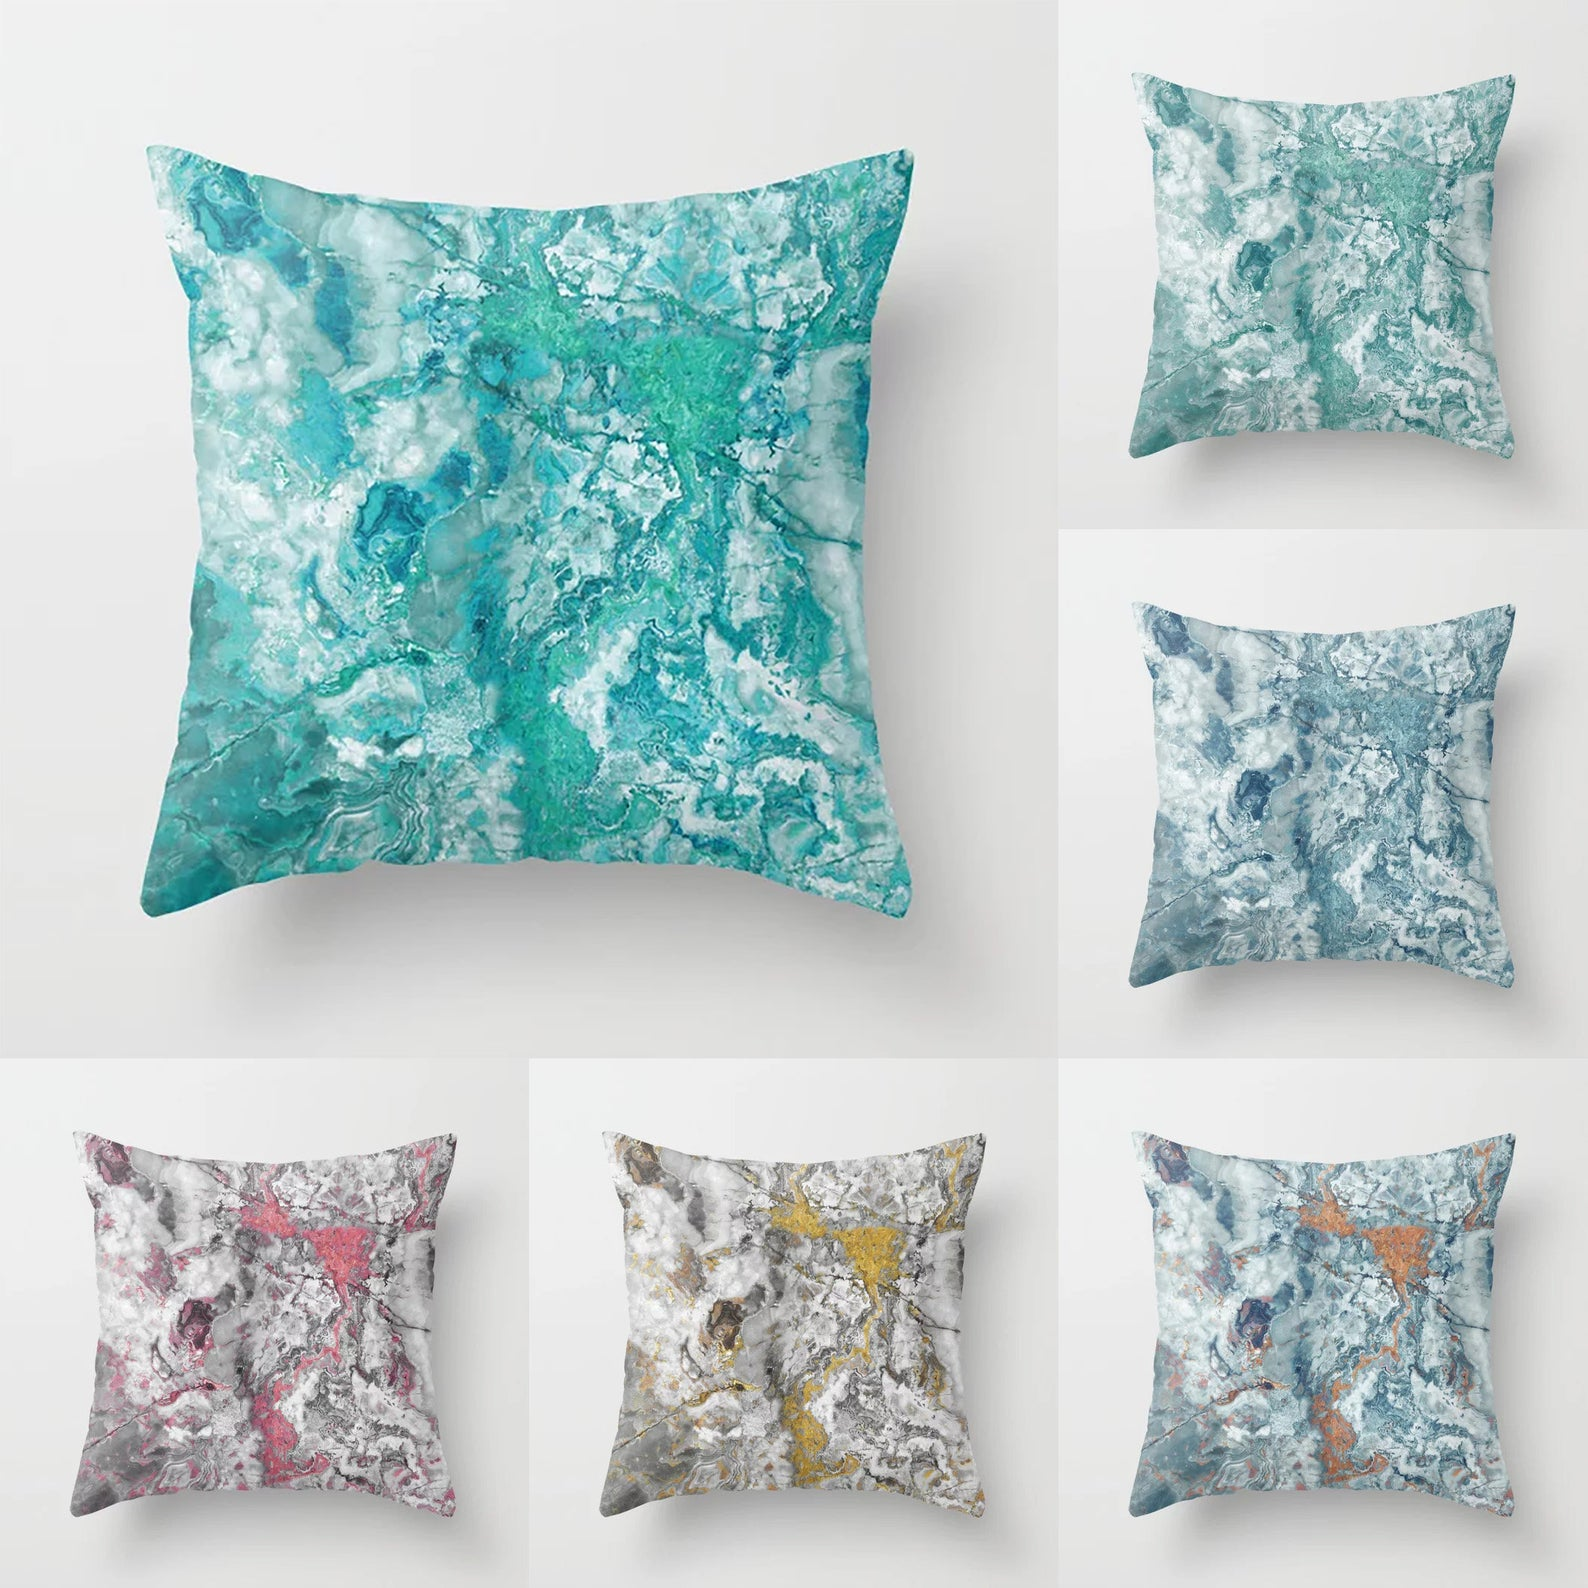 Marble Throw Pillow Indoor Outdoor Cushion Cover Case Aqua Etsy Outdoor Cushion Covers Throw Pillows Outdoor Pillow Covers